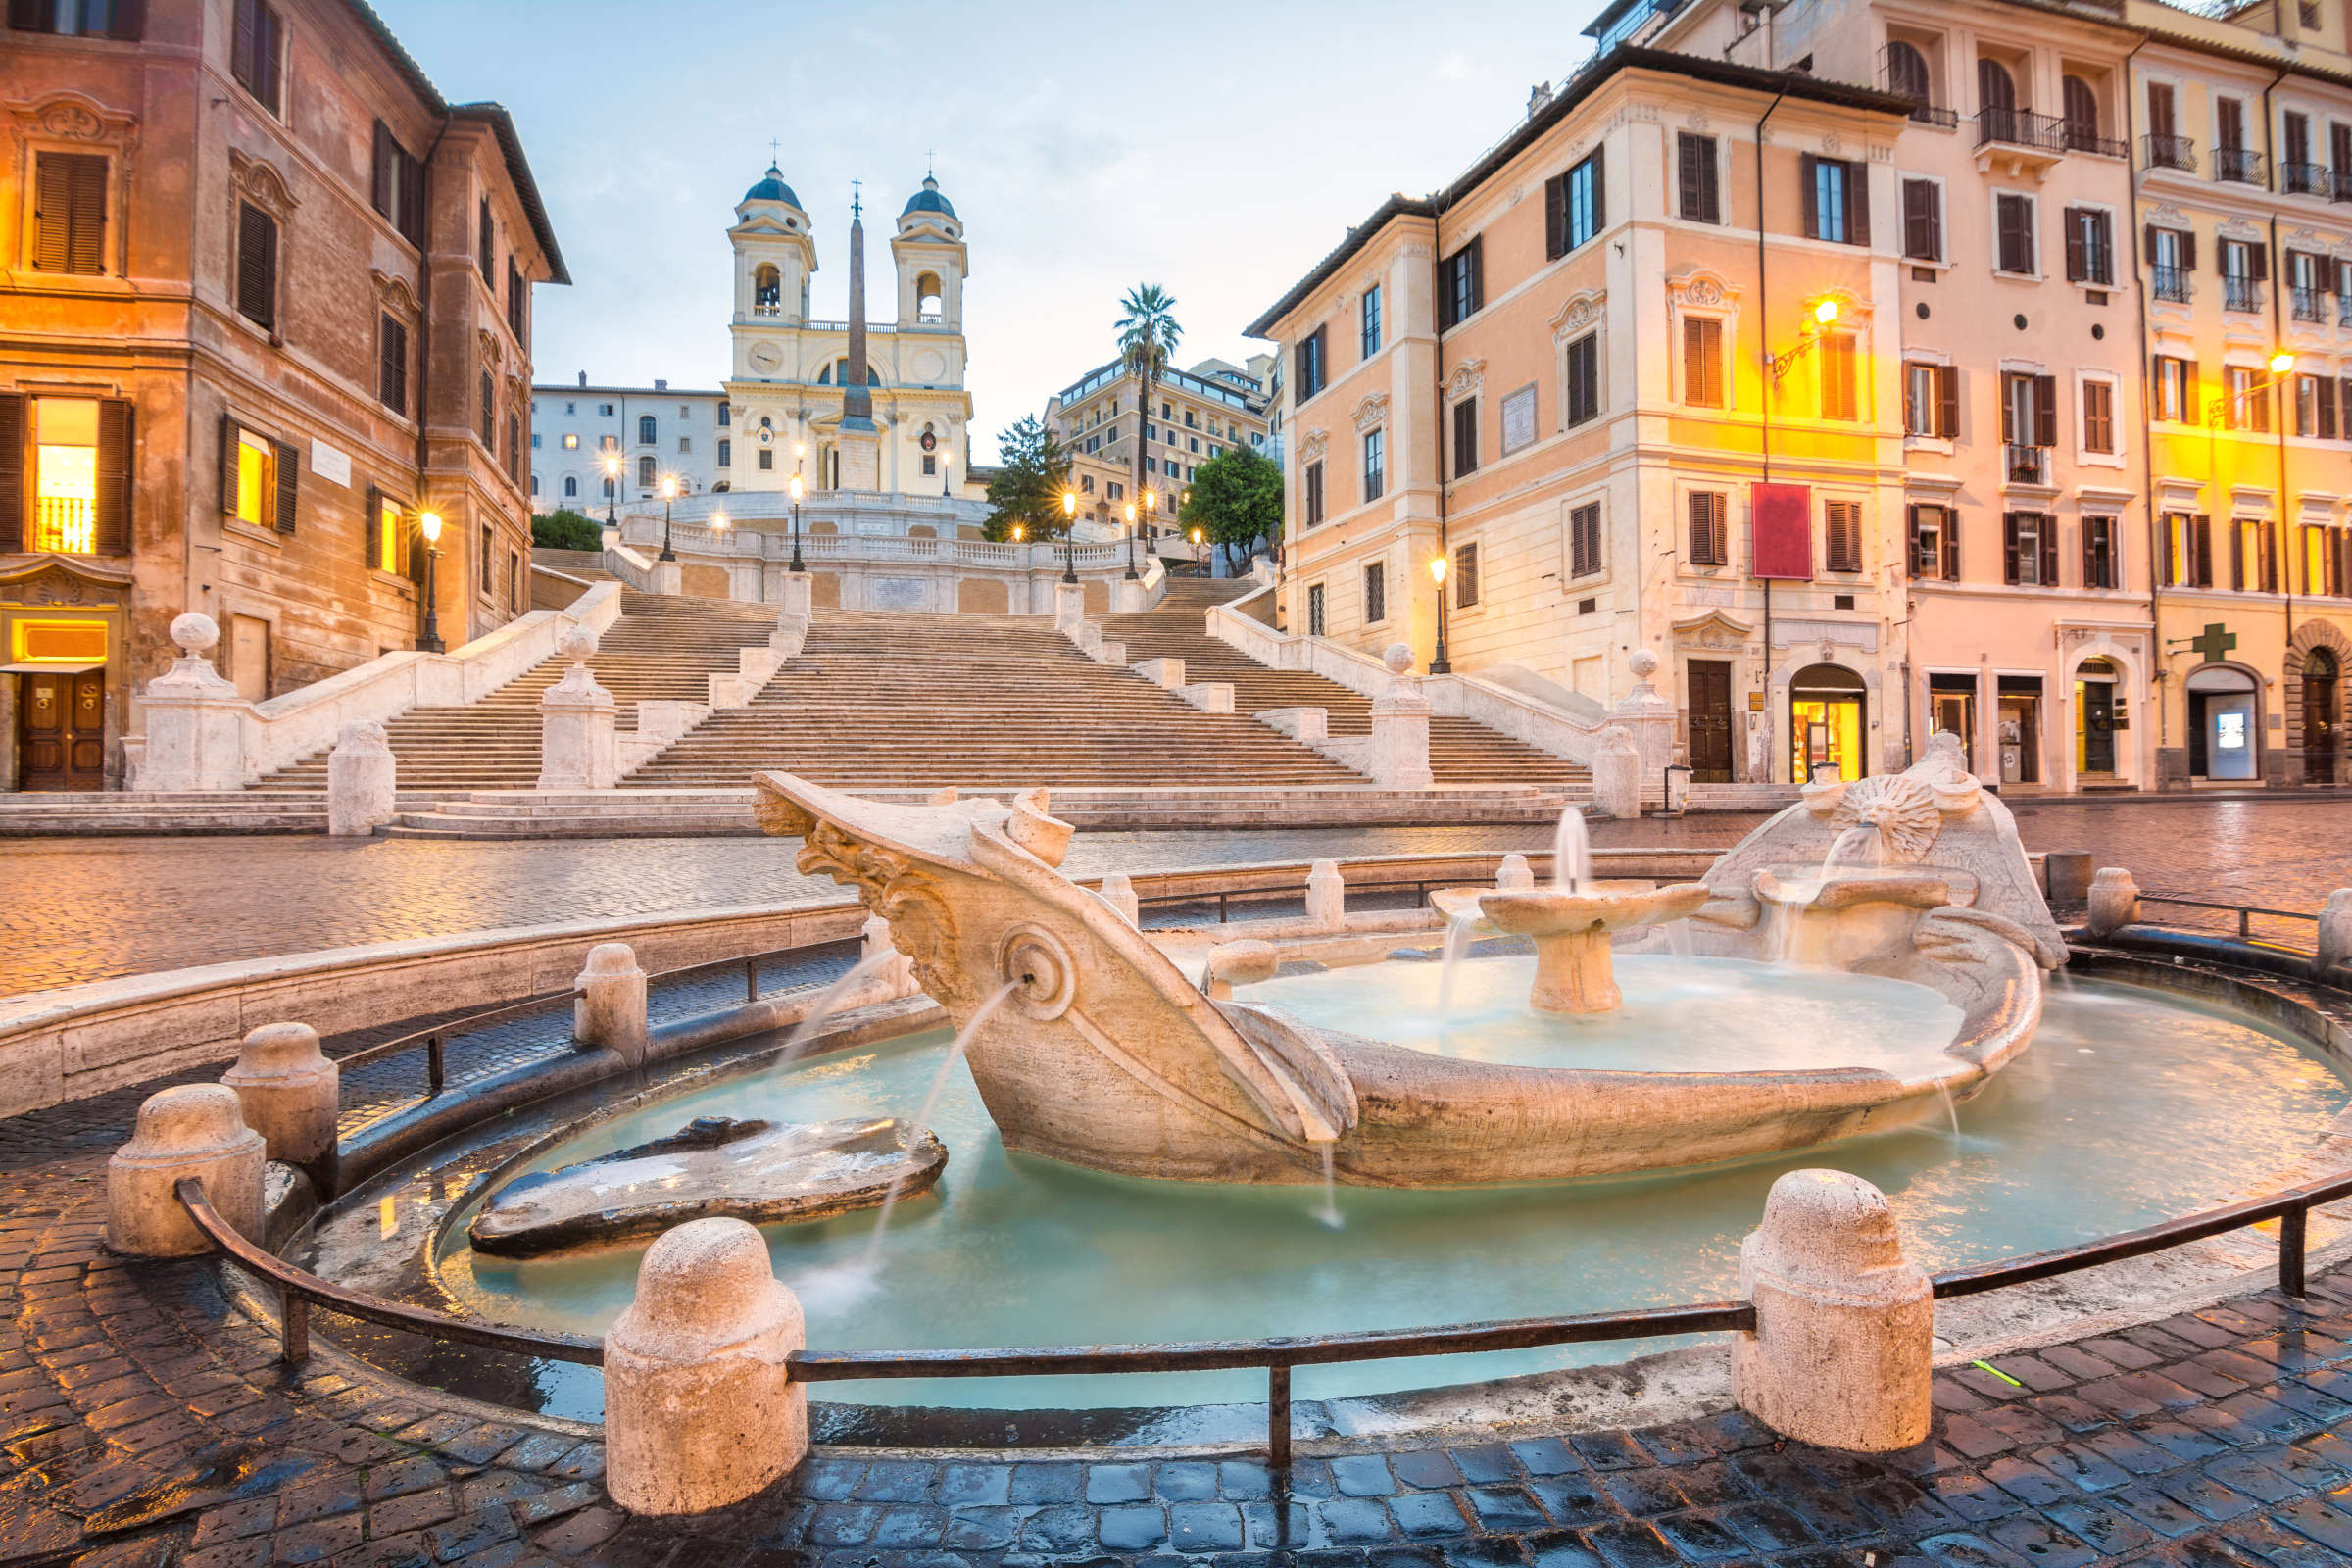 The Fontana della Barcaccia, found at the foot of the Spanish Steps